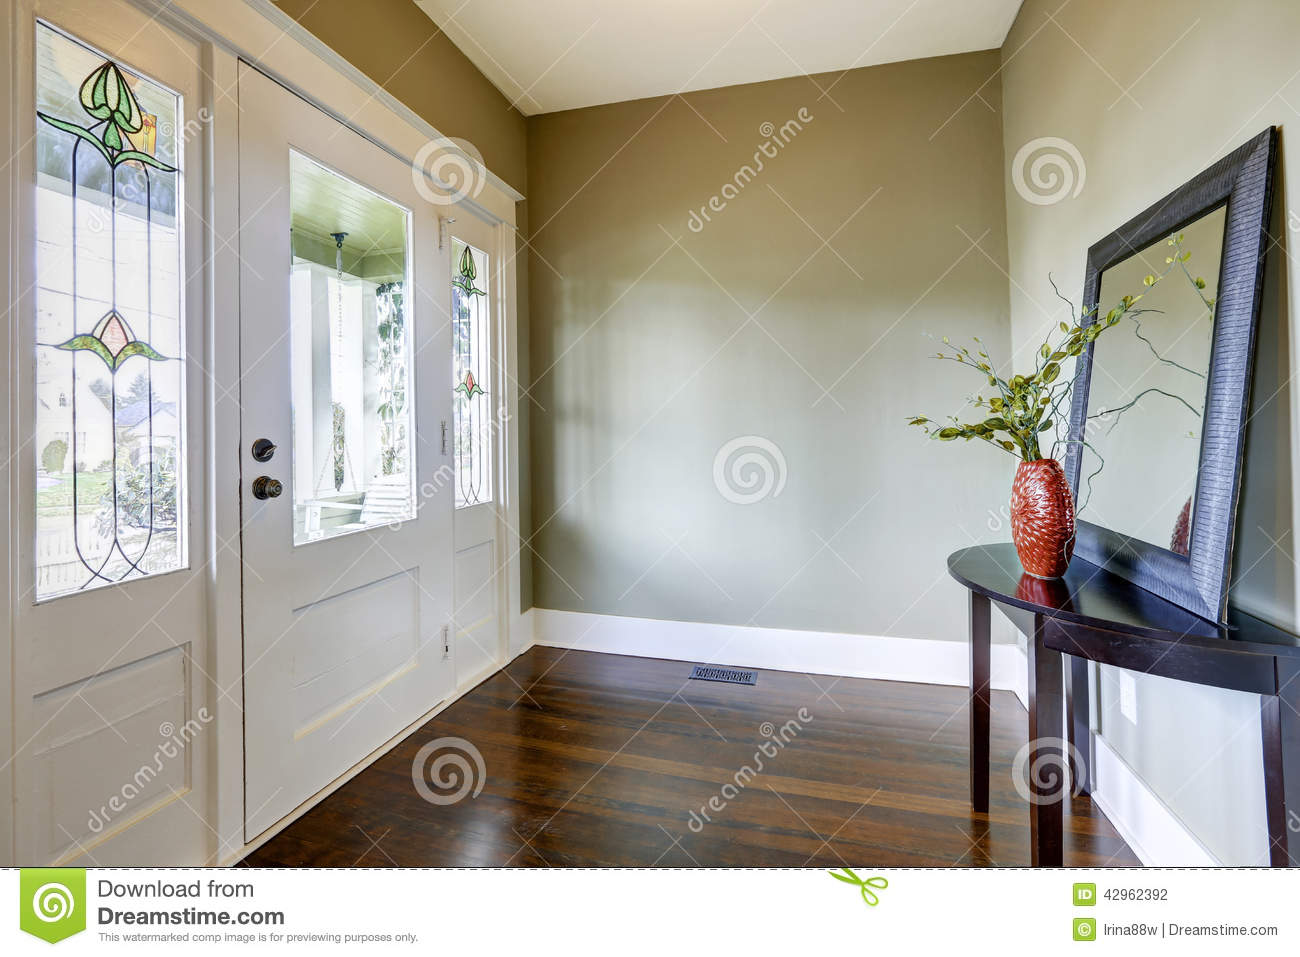 Simple 2 bedroom home plans - Entrance Hallway With Small Table And Mirror Stock Photo